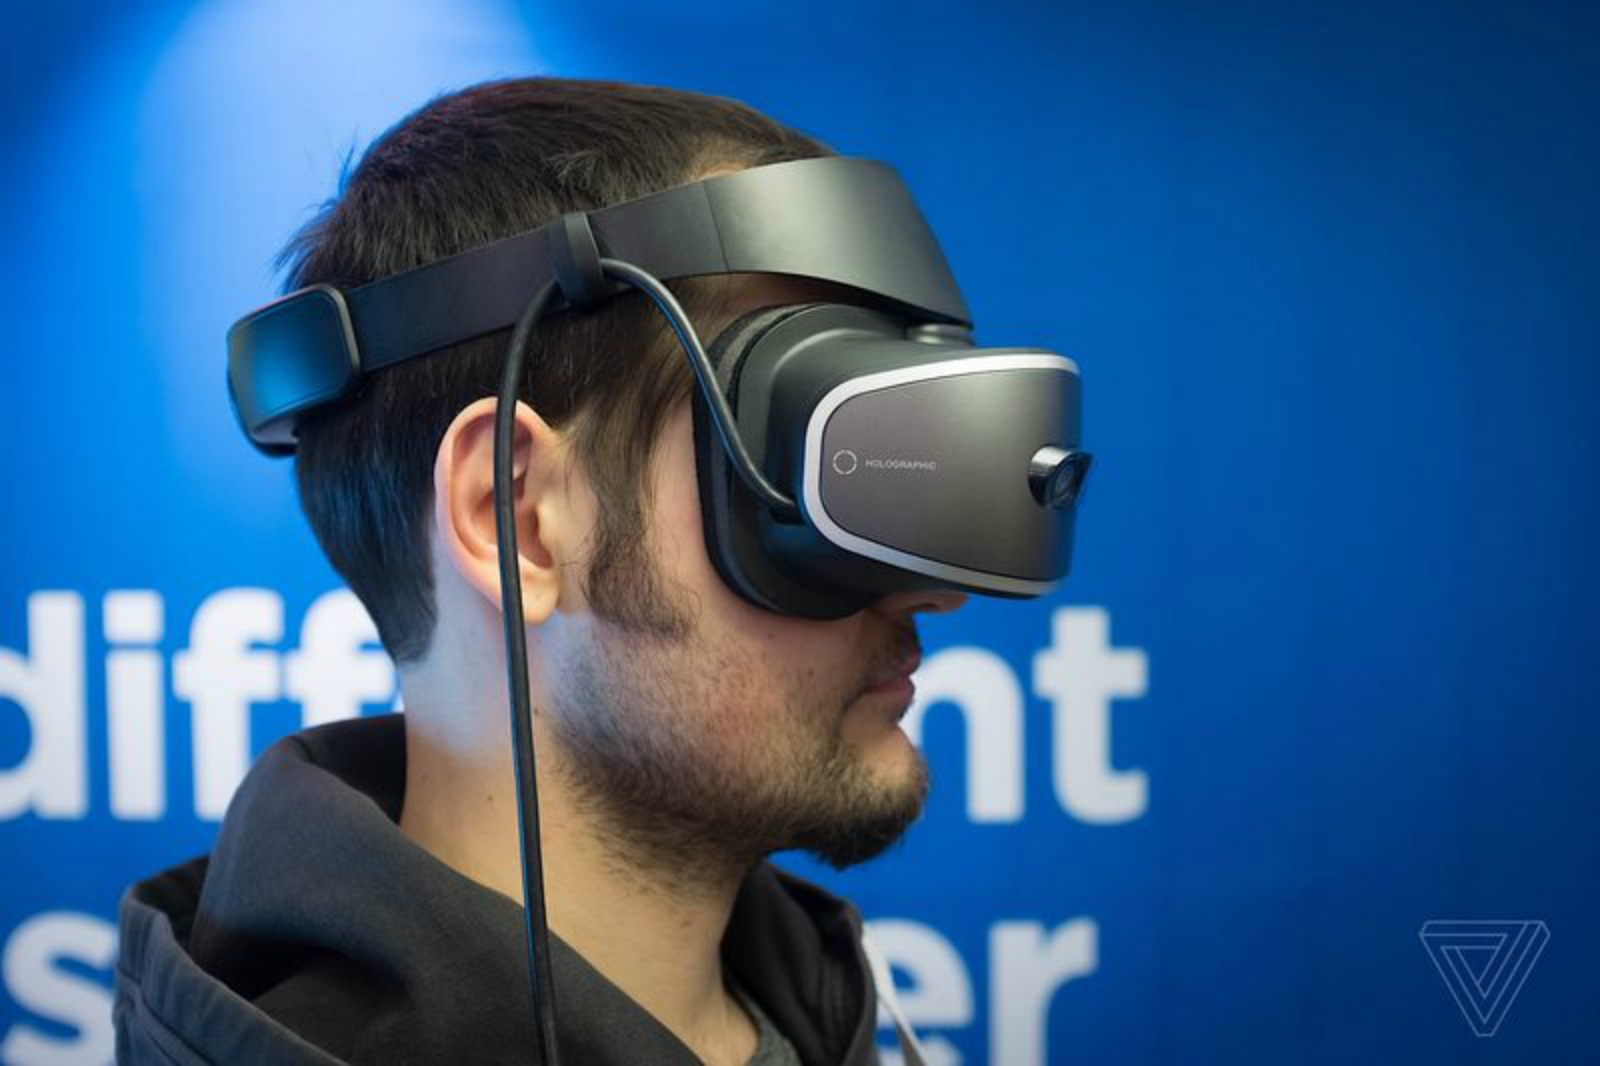 959cbc9db80c Lenovo s New VR Headset Packs More Pixels at Lower Weight   Cost Than Rift  and Vive